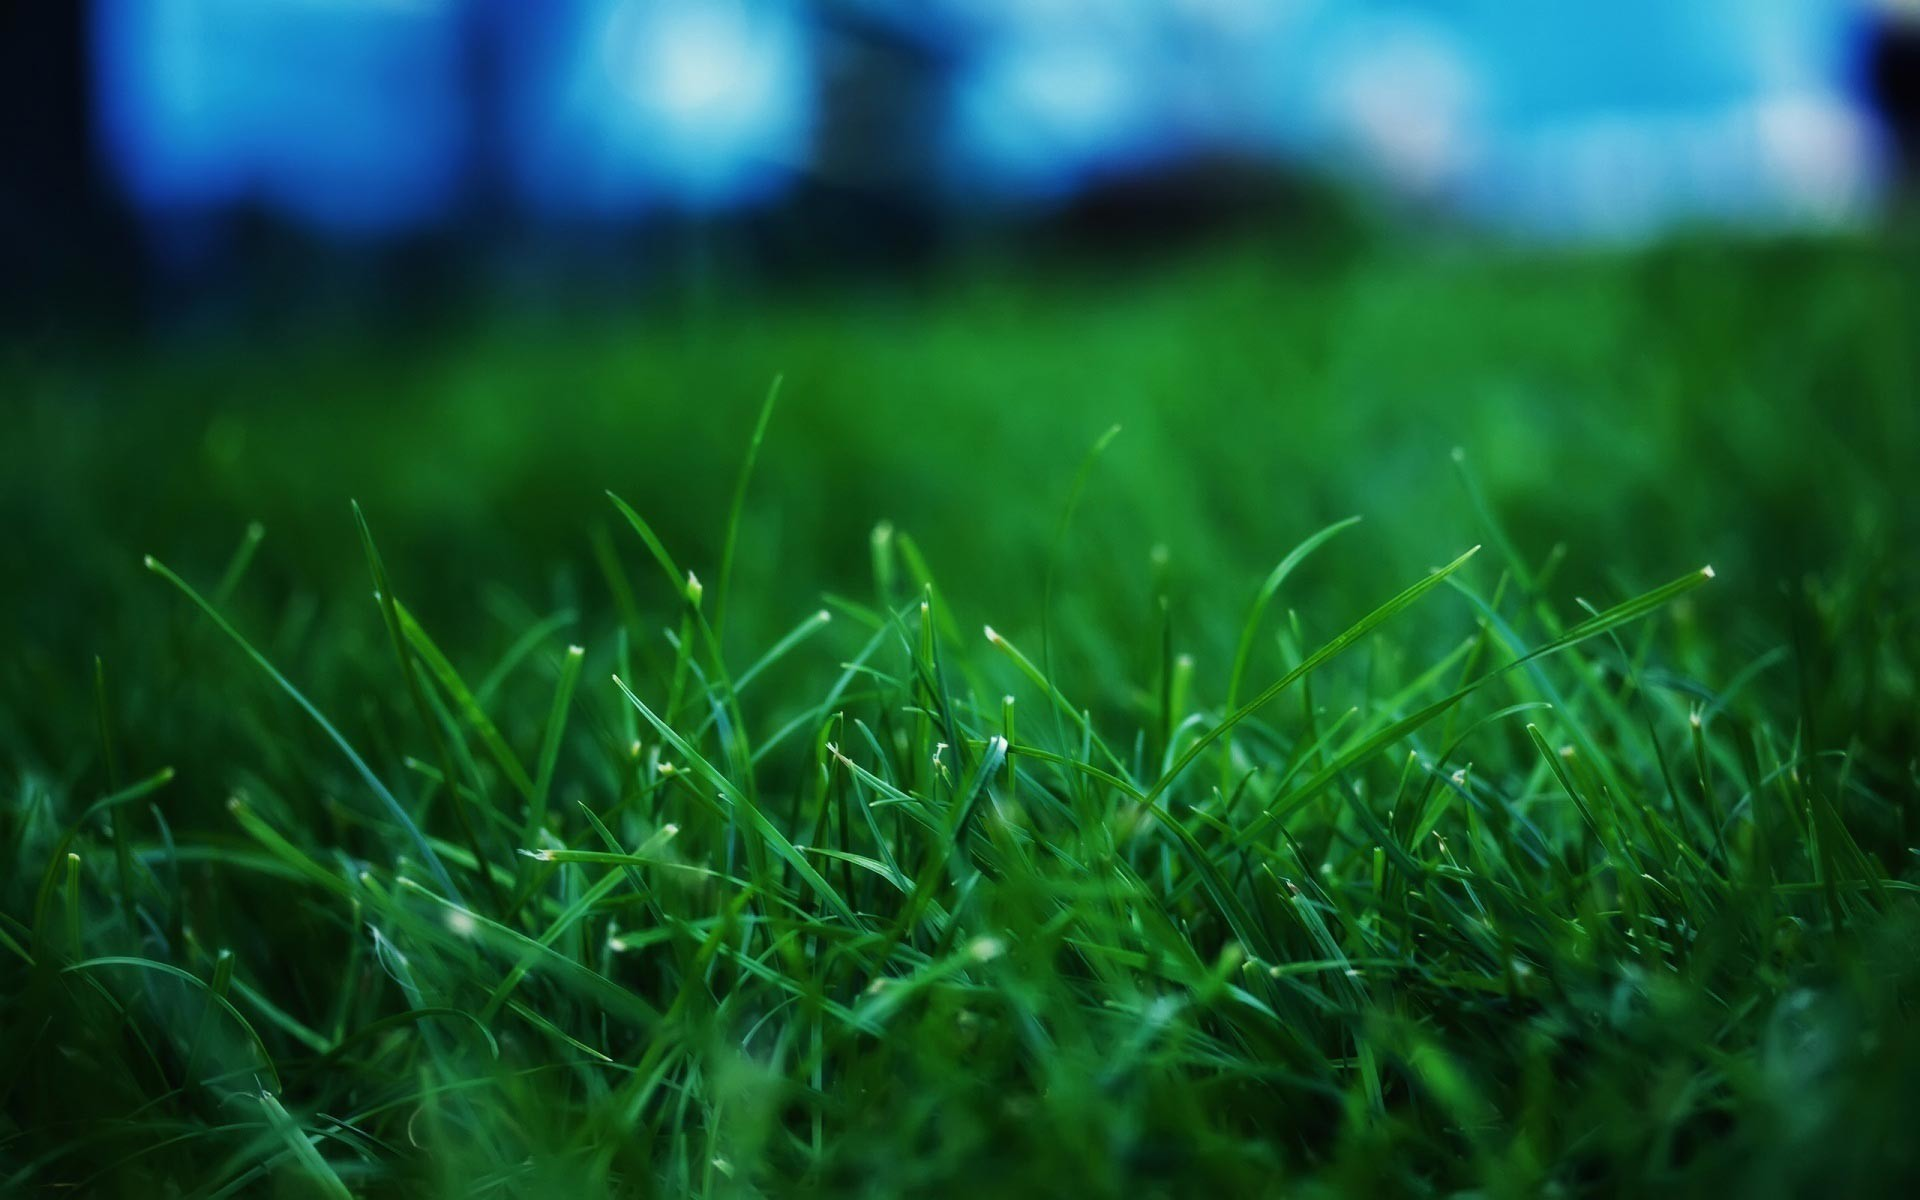 dark-green-grass-high-quality-picture-hd-free-